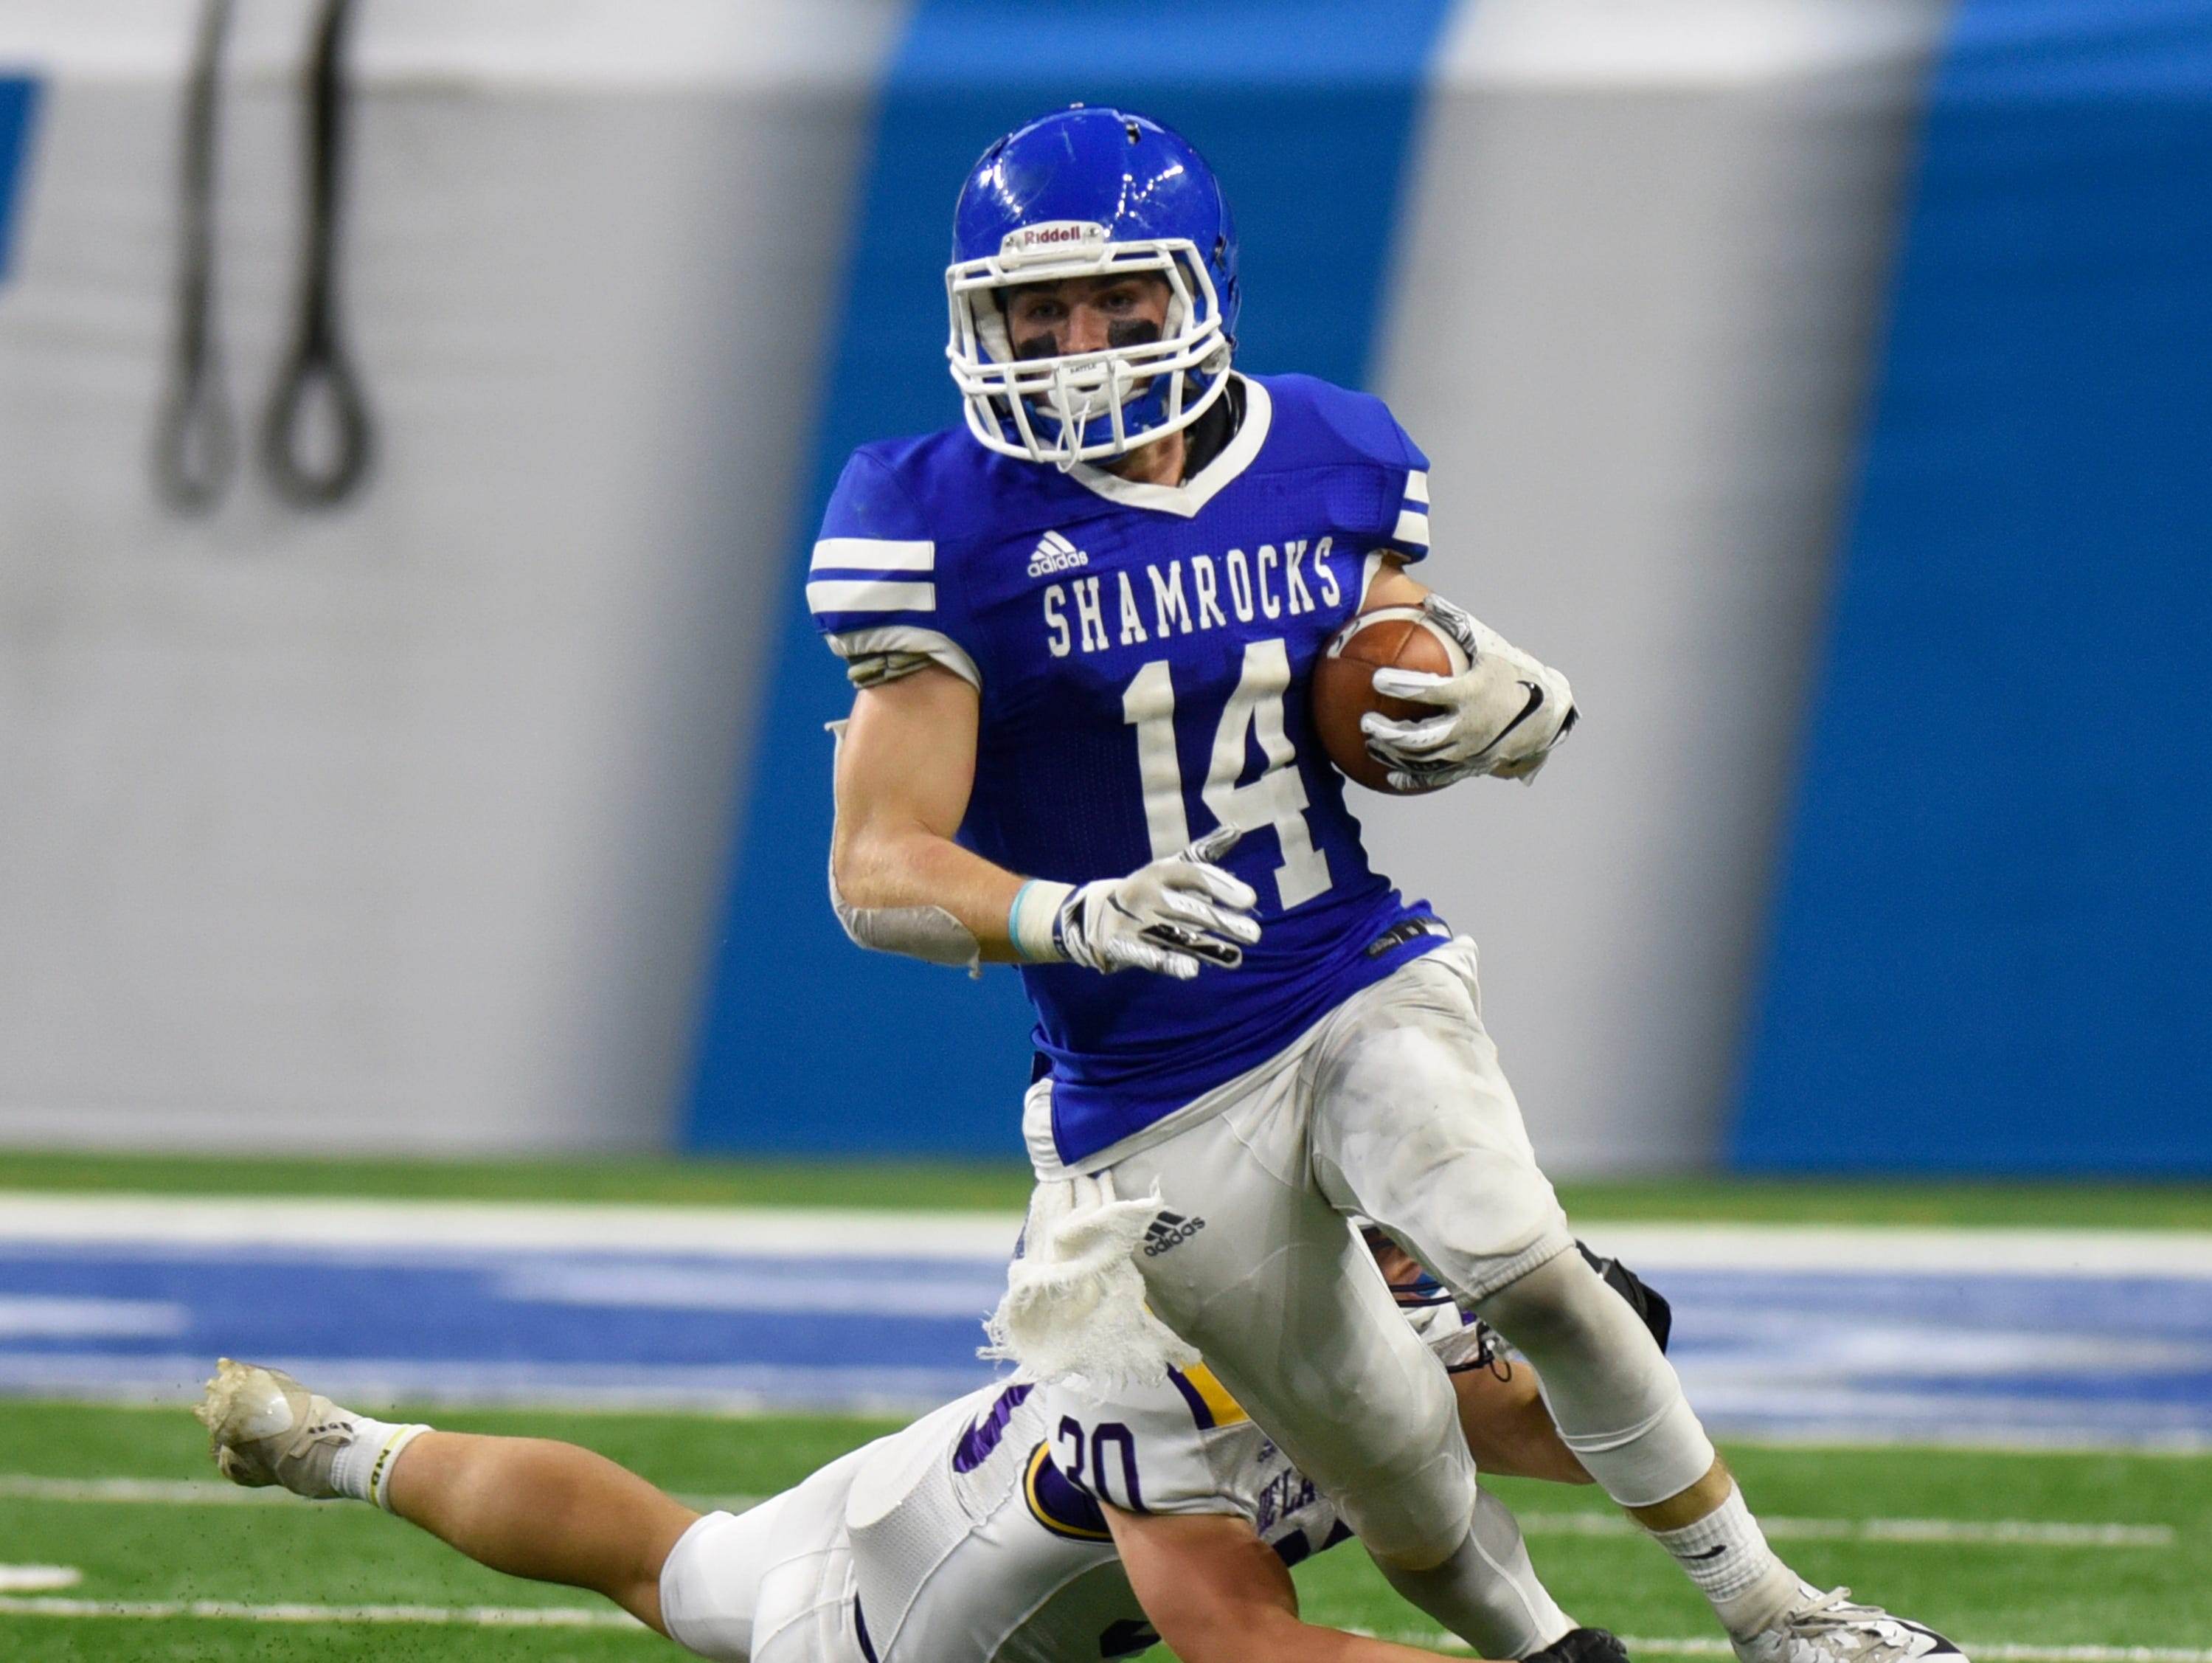 Detroit Catholic Central wide receiver Ryan Birney (14) is tripped up by Warren De La Salle's Brett Stanley during the Catholic League Prep Bowl AB Division championship game at Ford Field Oct. 20, 2018.